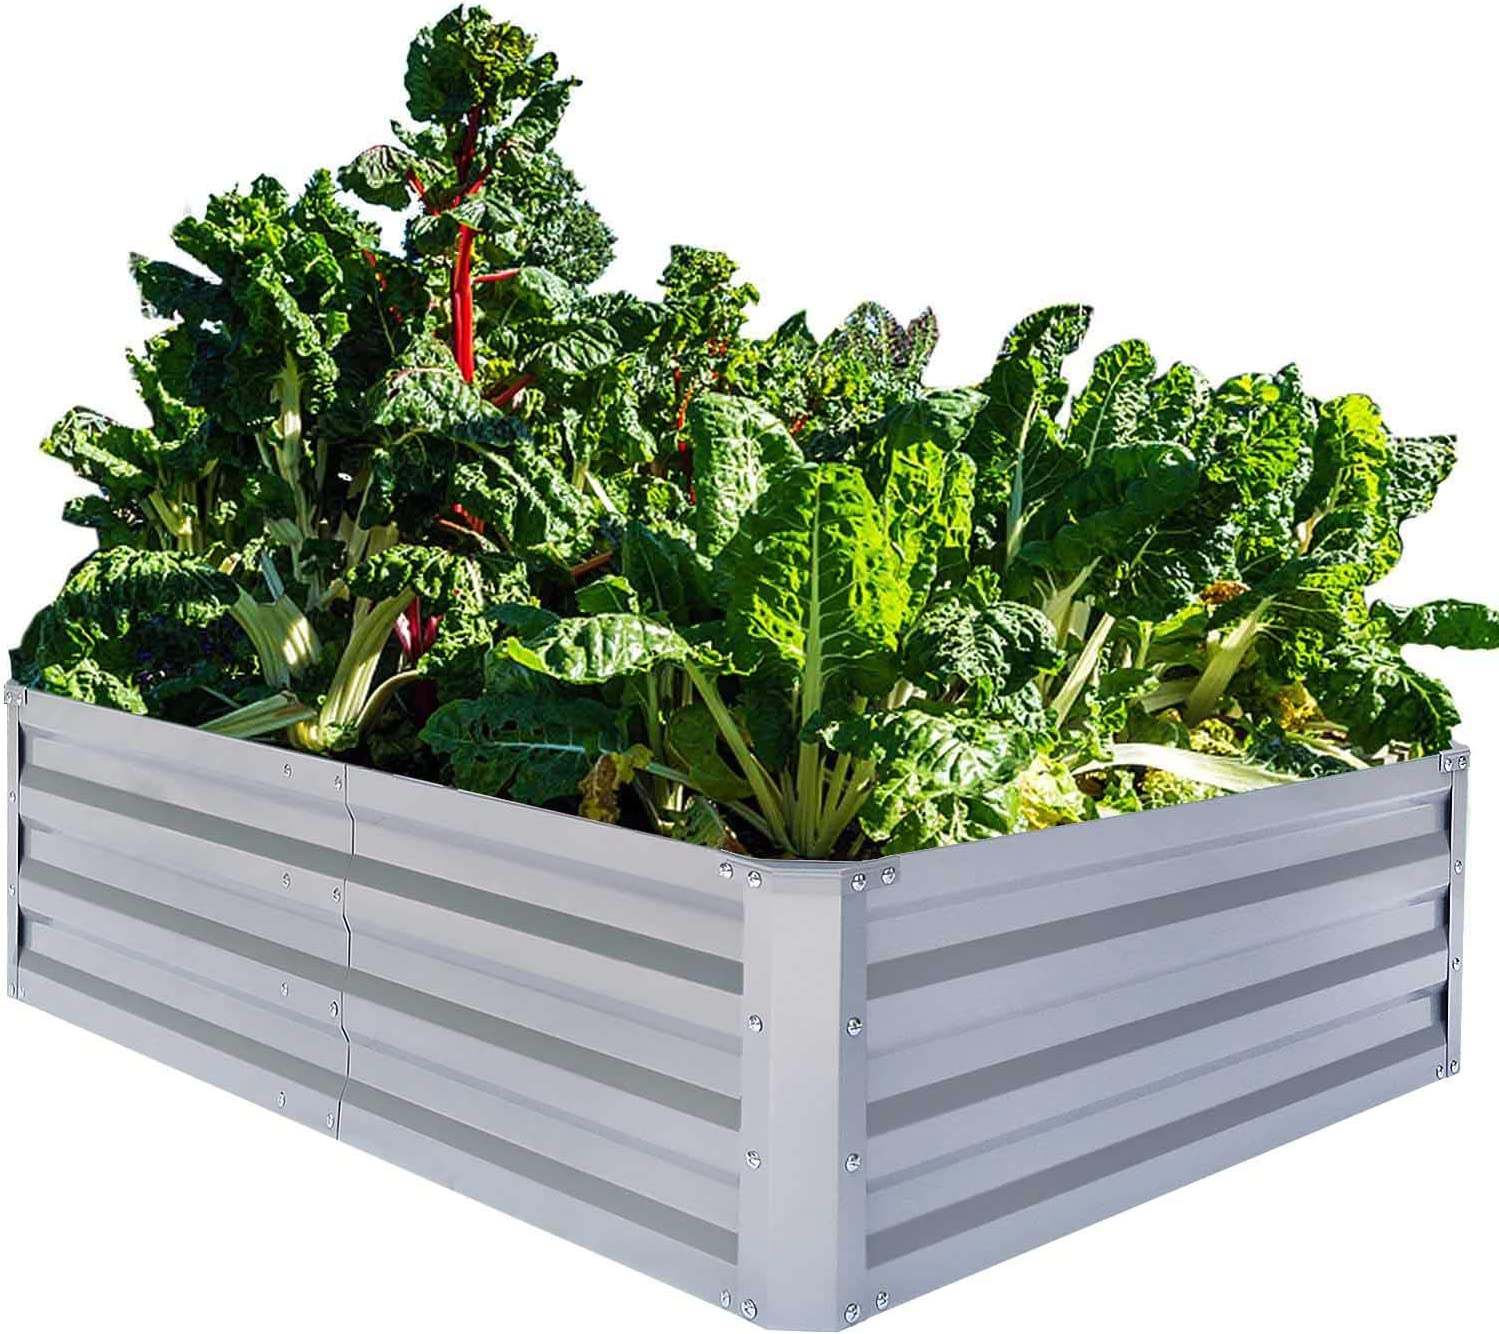 Galvanized raised garden bed for vegetables that grow well together